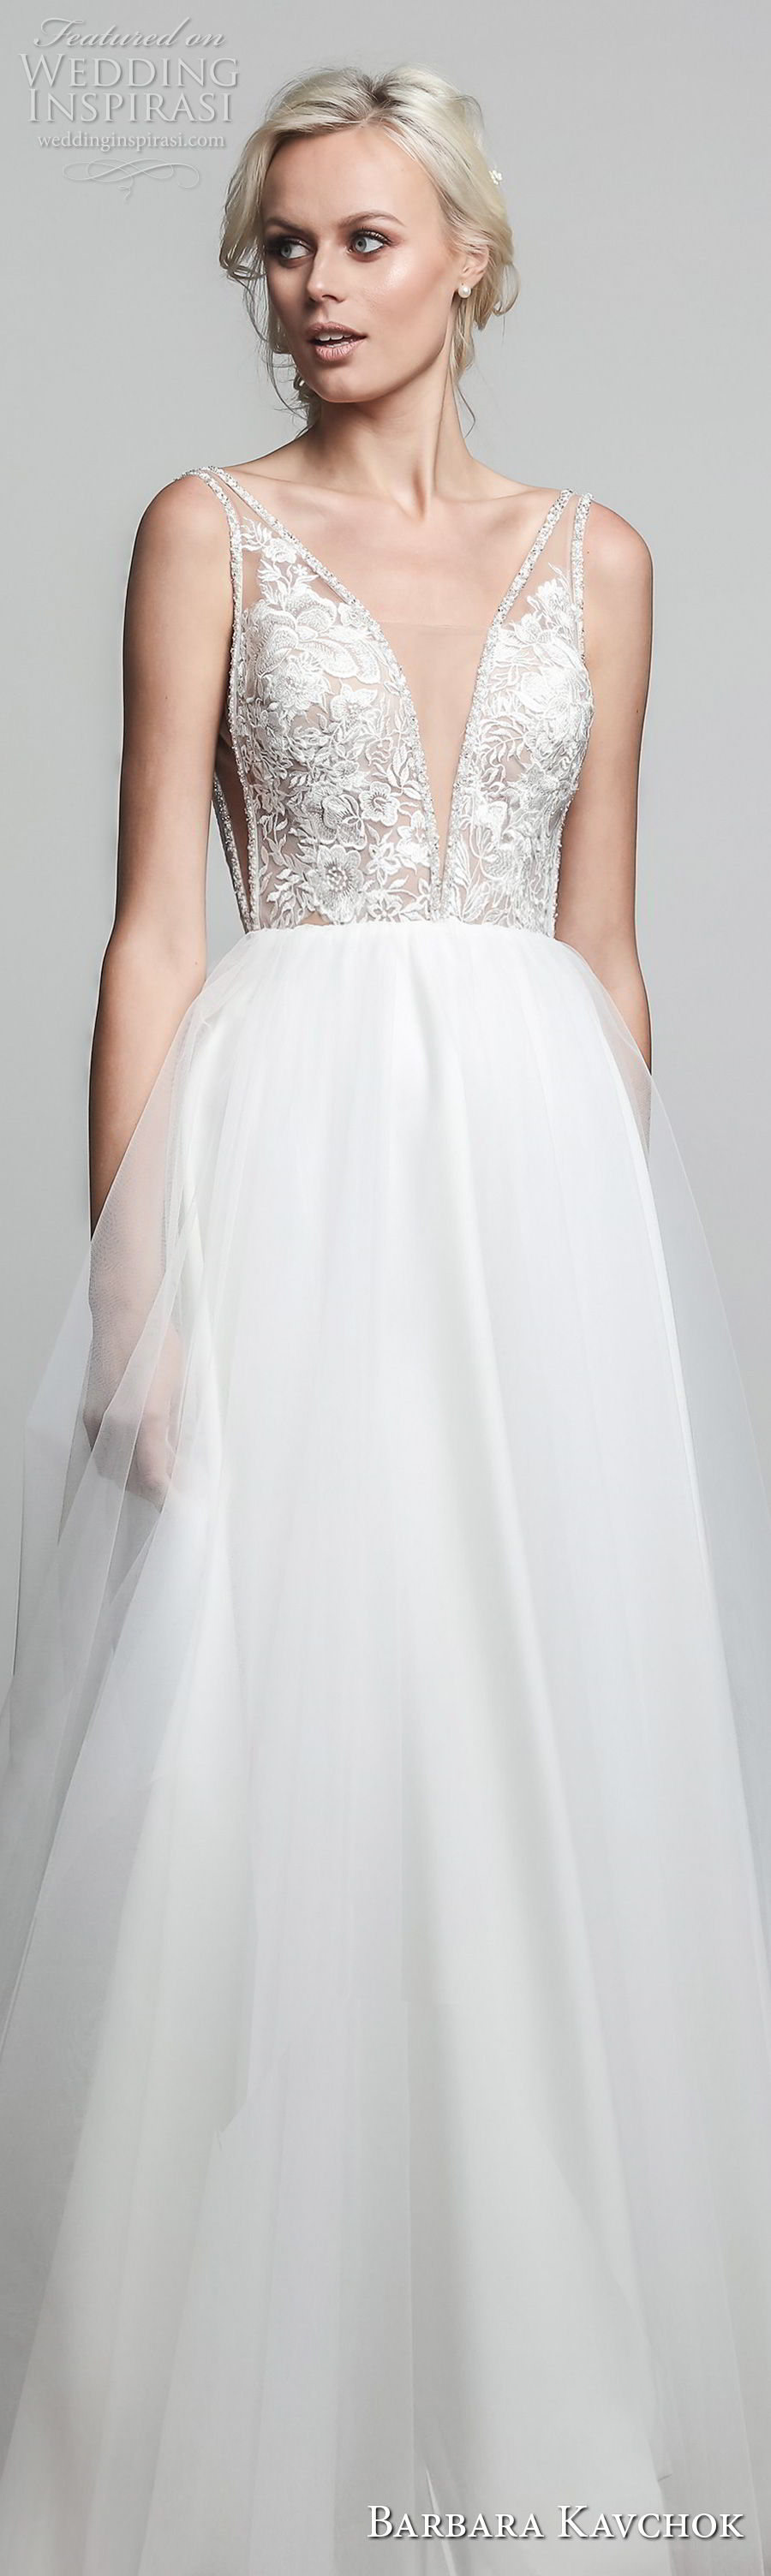 barbara kavchok spring 2018 bridal sleeveless deep v neck heavily embellished bodice elegant romantic a line wedding dress open v back sweep train (ivy) lv